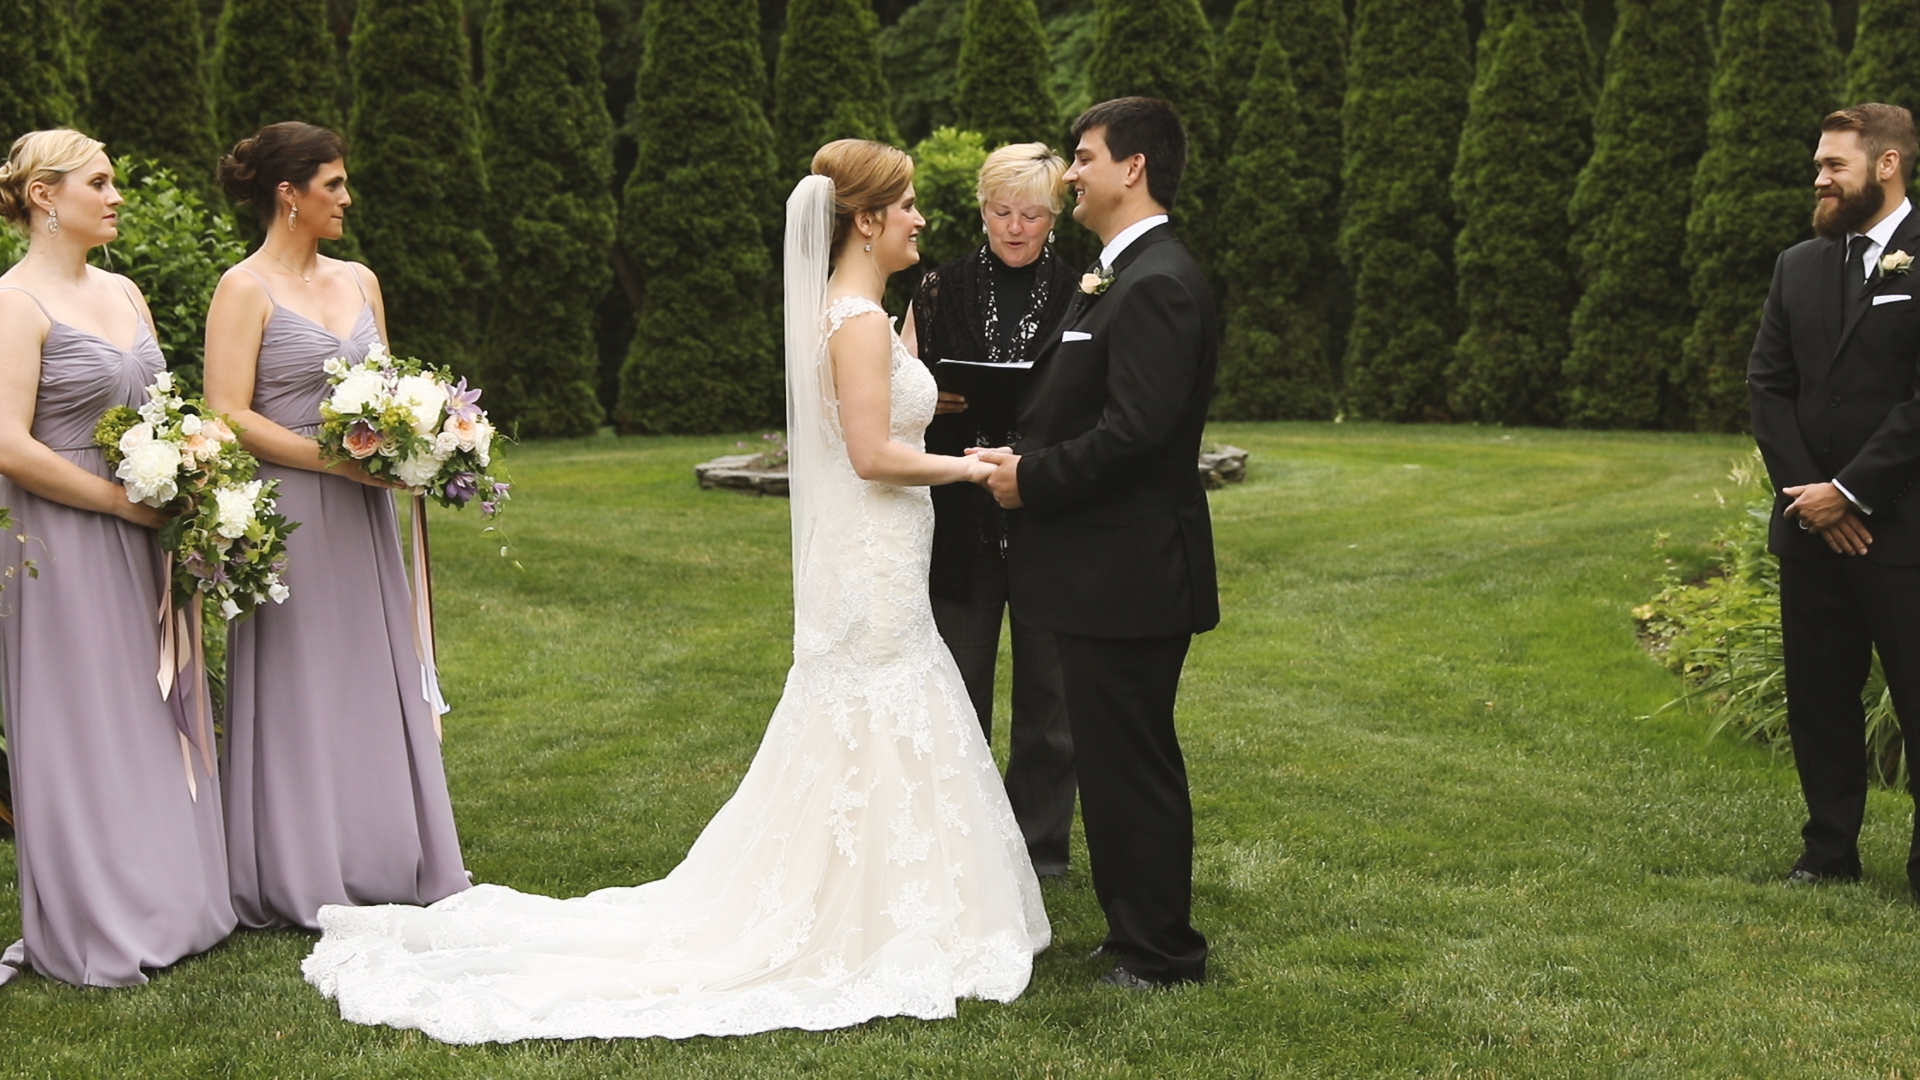 Newport Rhode Island Wedding - Bride Film - Glen Manor outdoor ceremony